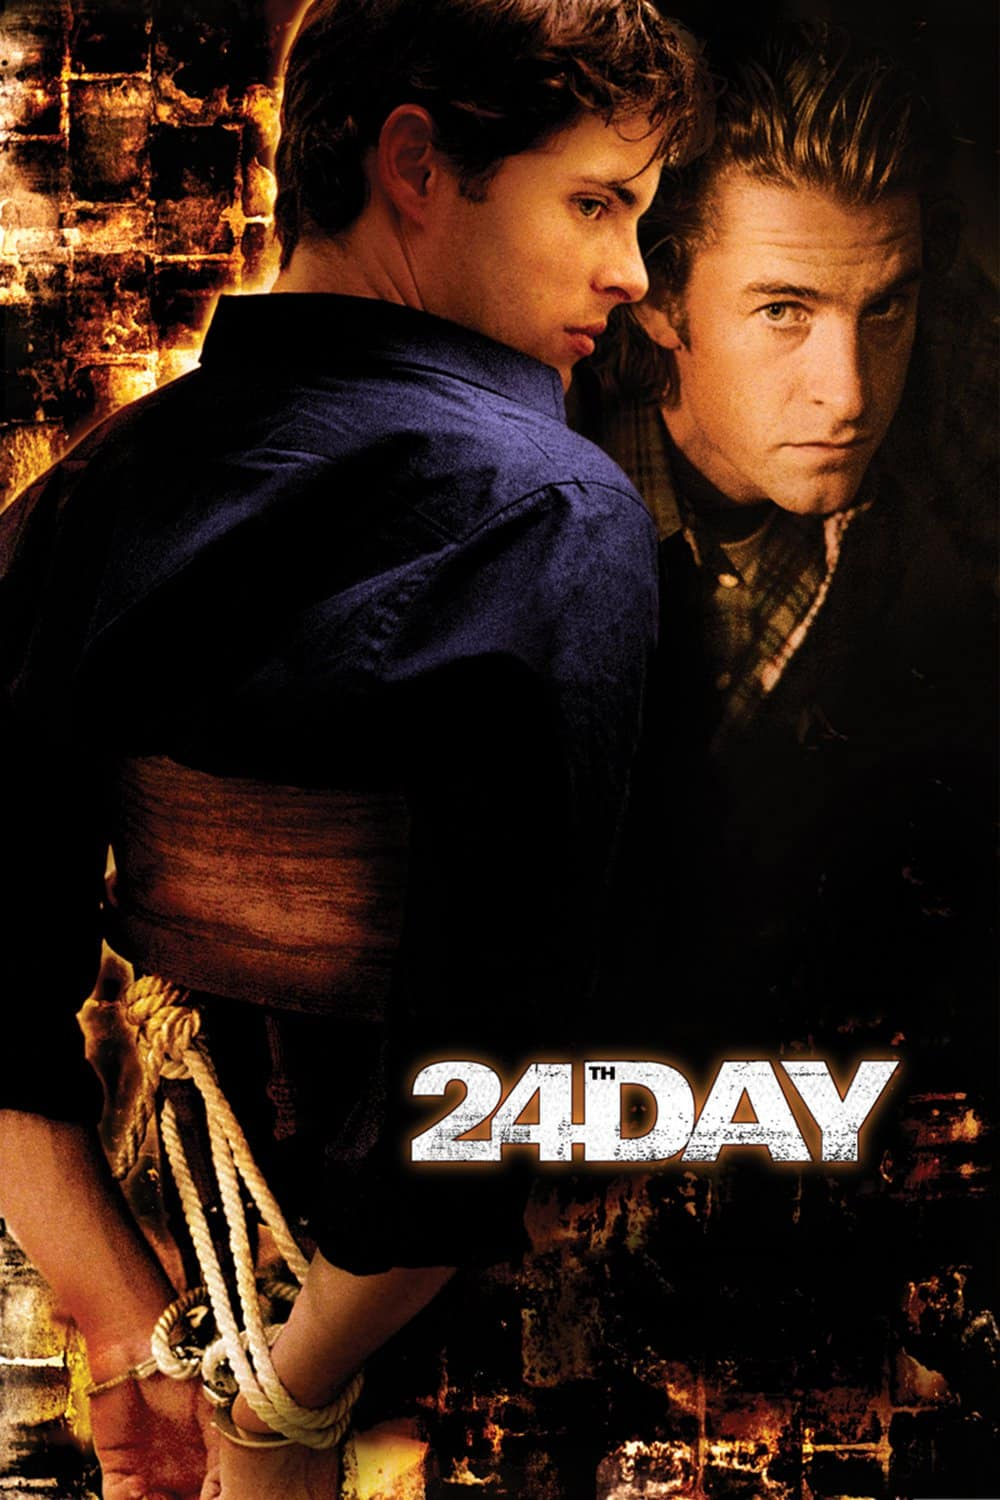 The 24th Day, 2004